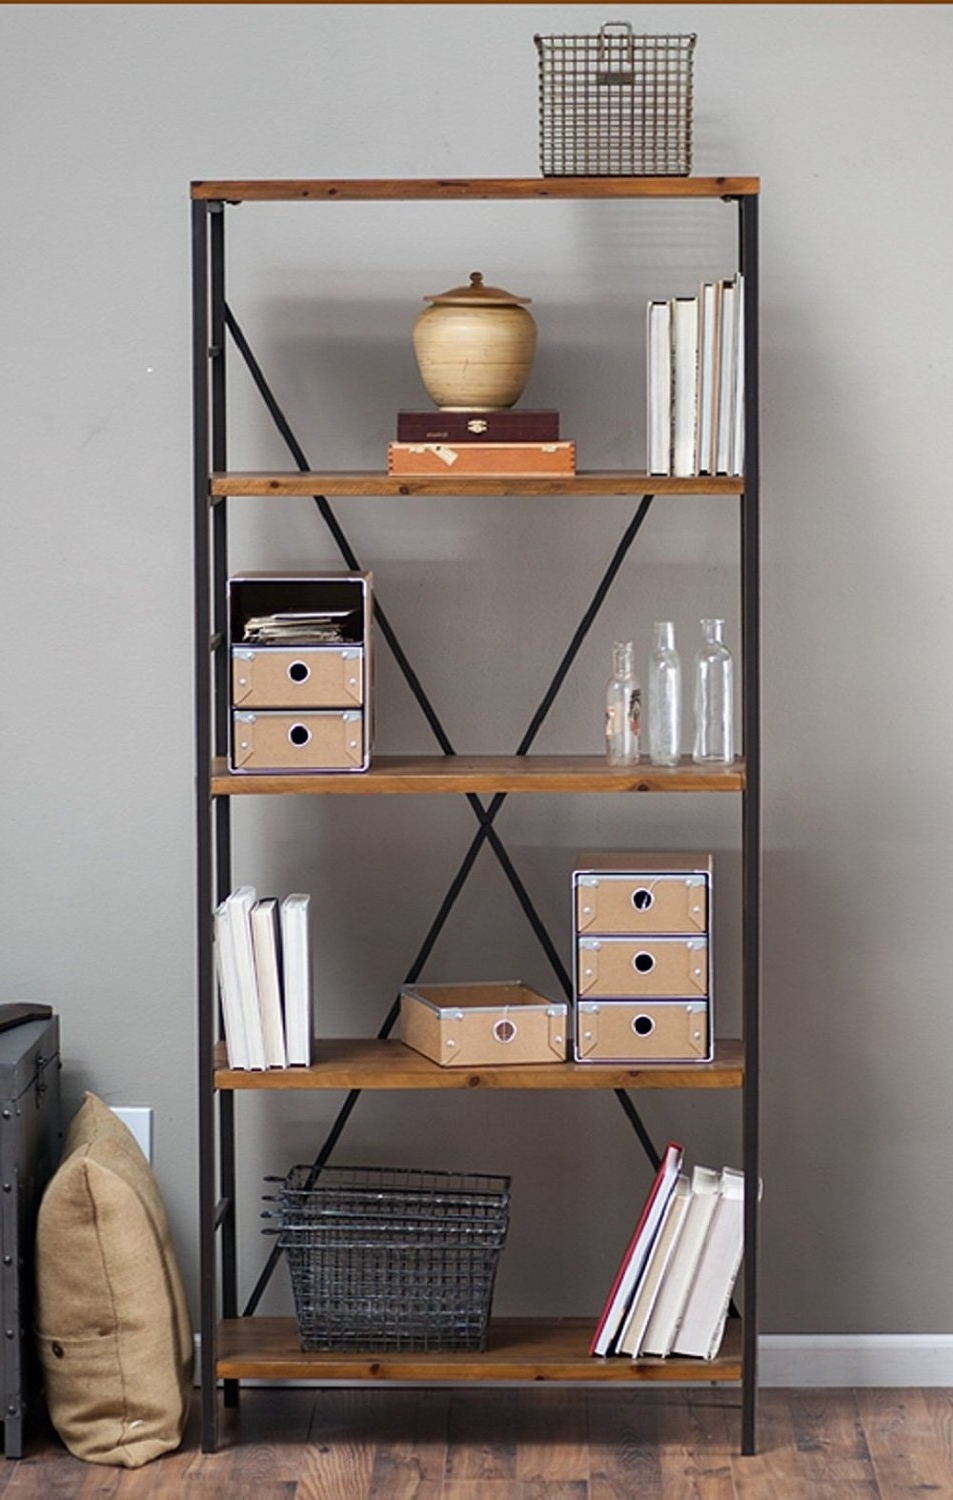 Amazon: Rustic Wood Bookcase With Adjustable Shelves Featuring Intended For Popular Amazon Bookcases (View 6 of 15)